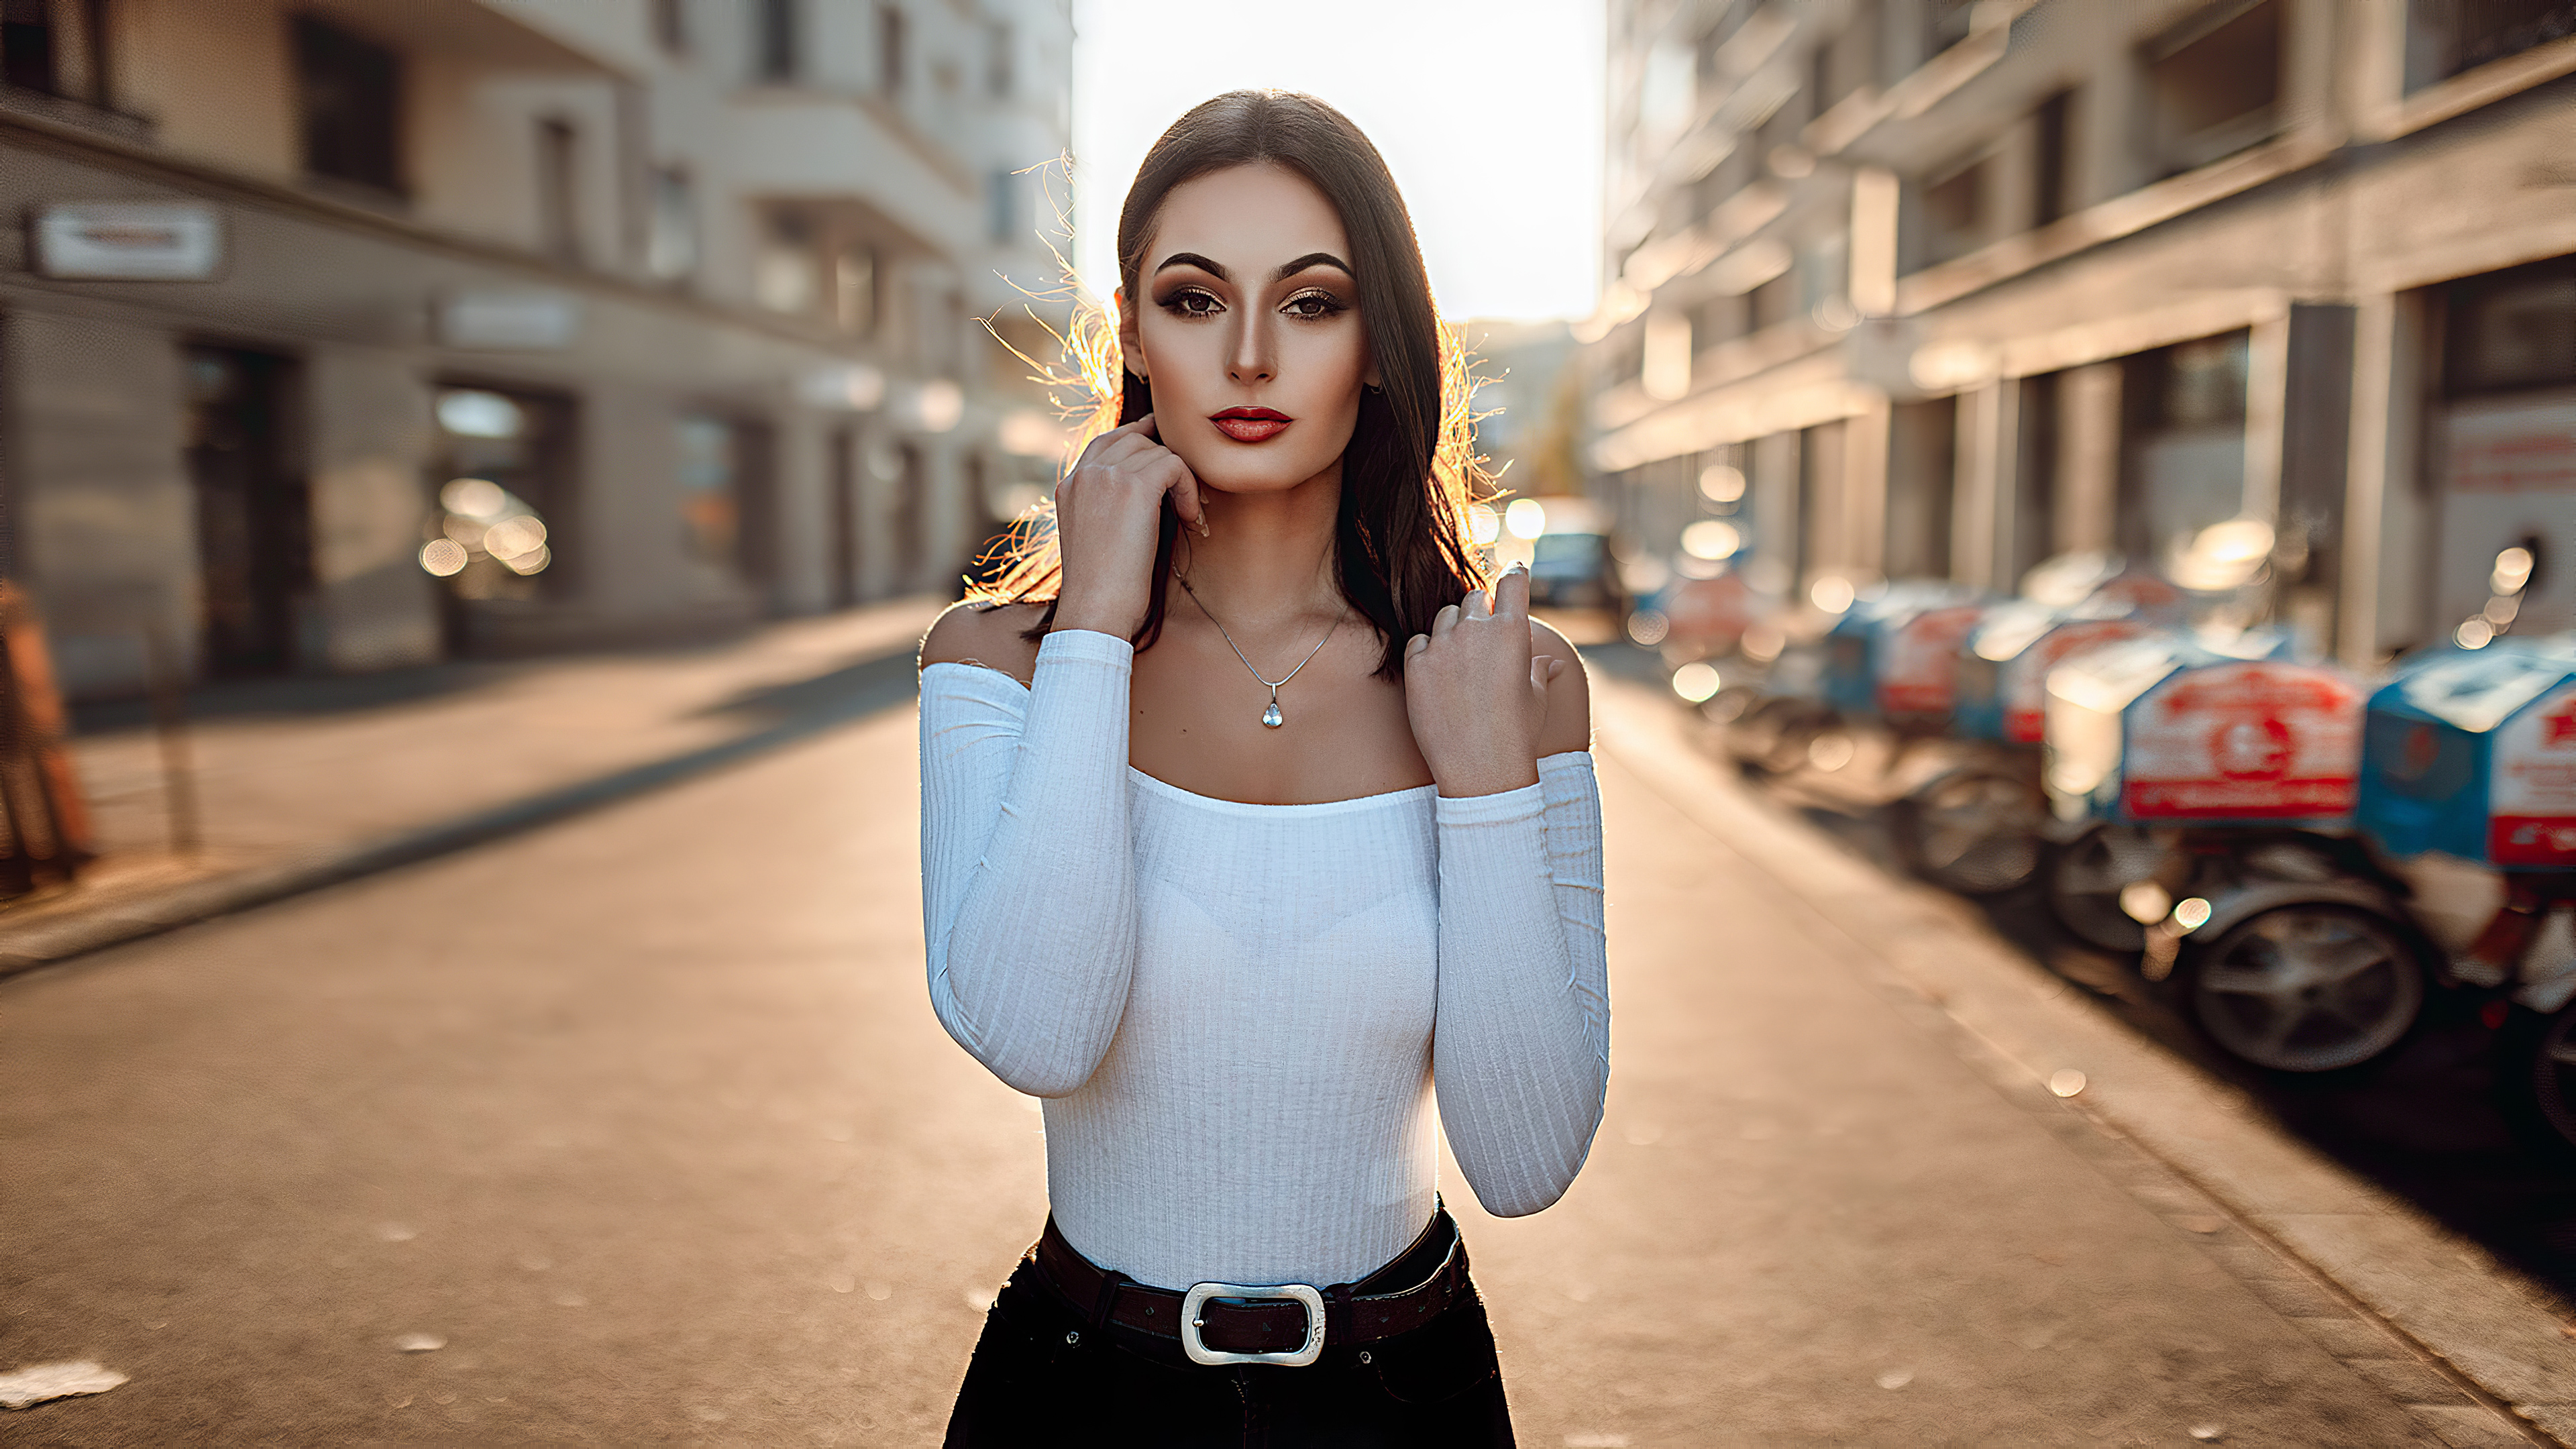 Girl Brunette Street Photography 4k Hd Girls 4k Wallpapers Images Backgrounds Photos And Pictures